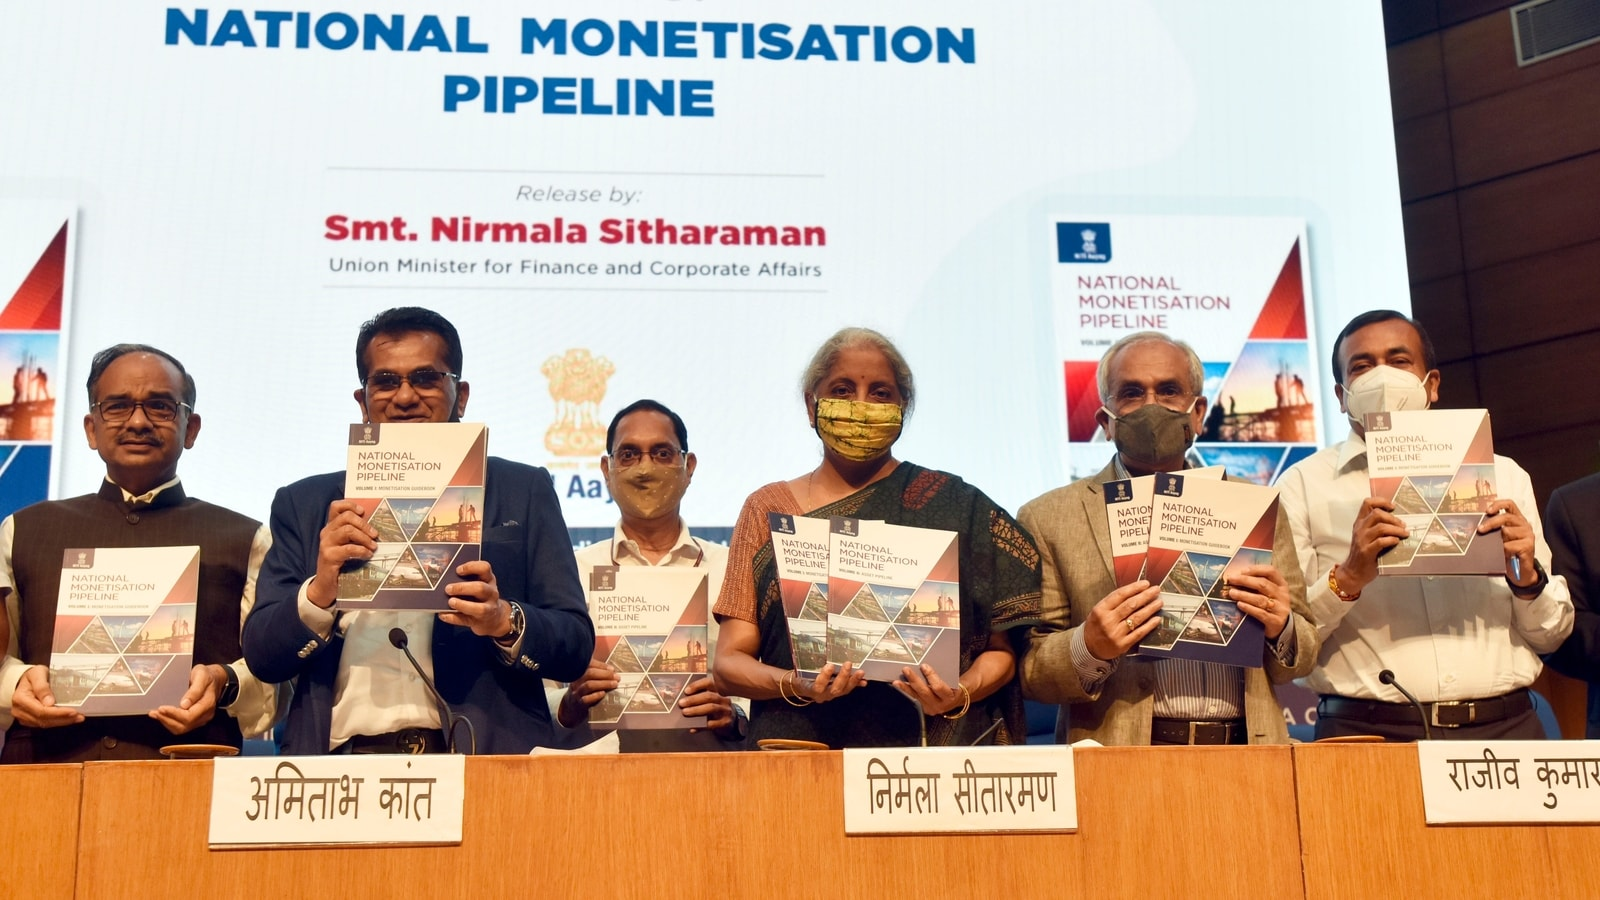 Finance Minister of India Launched National Monetisation Pipeline: Current Affairs 24/08/21 School Megamart 2021